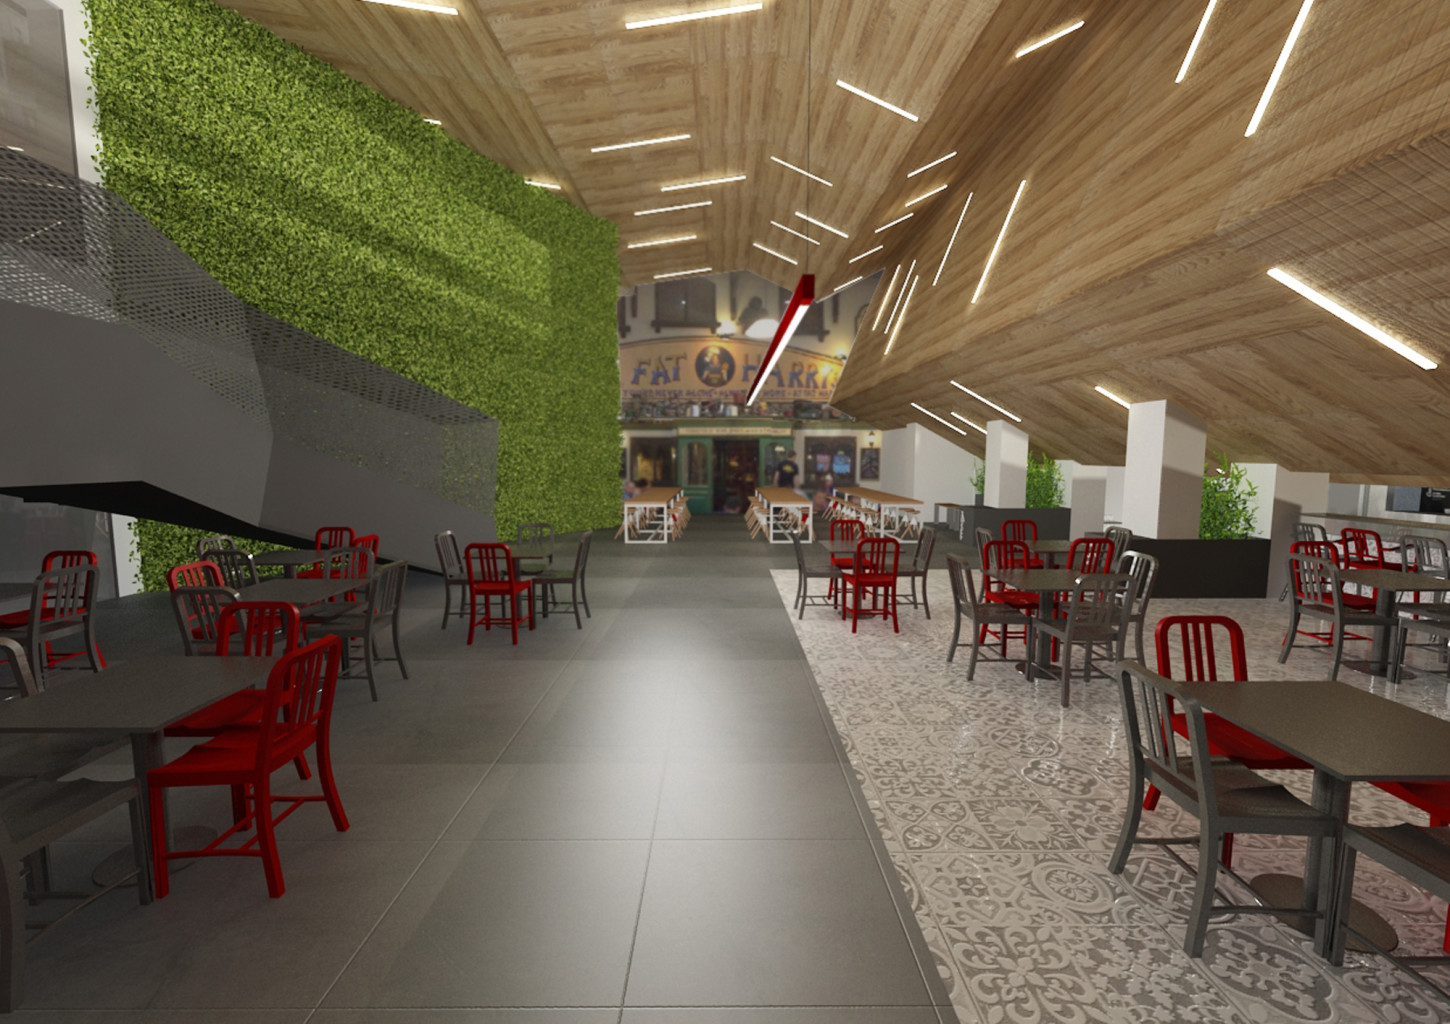 mia food court malta render 1